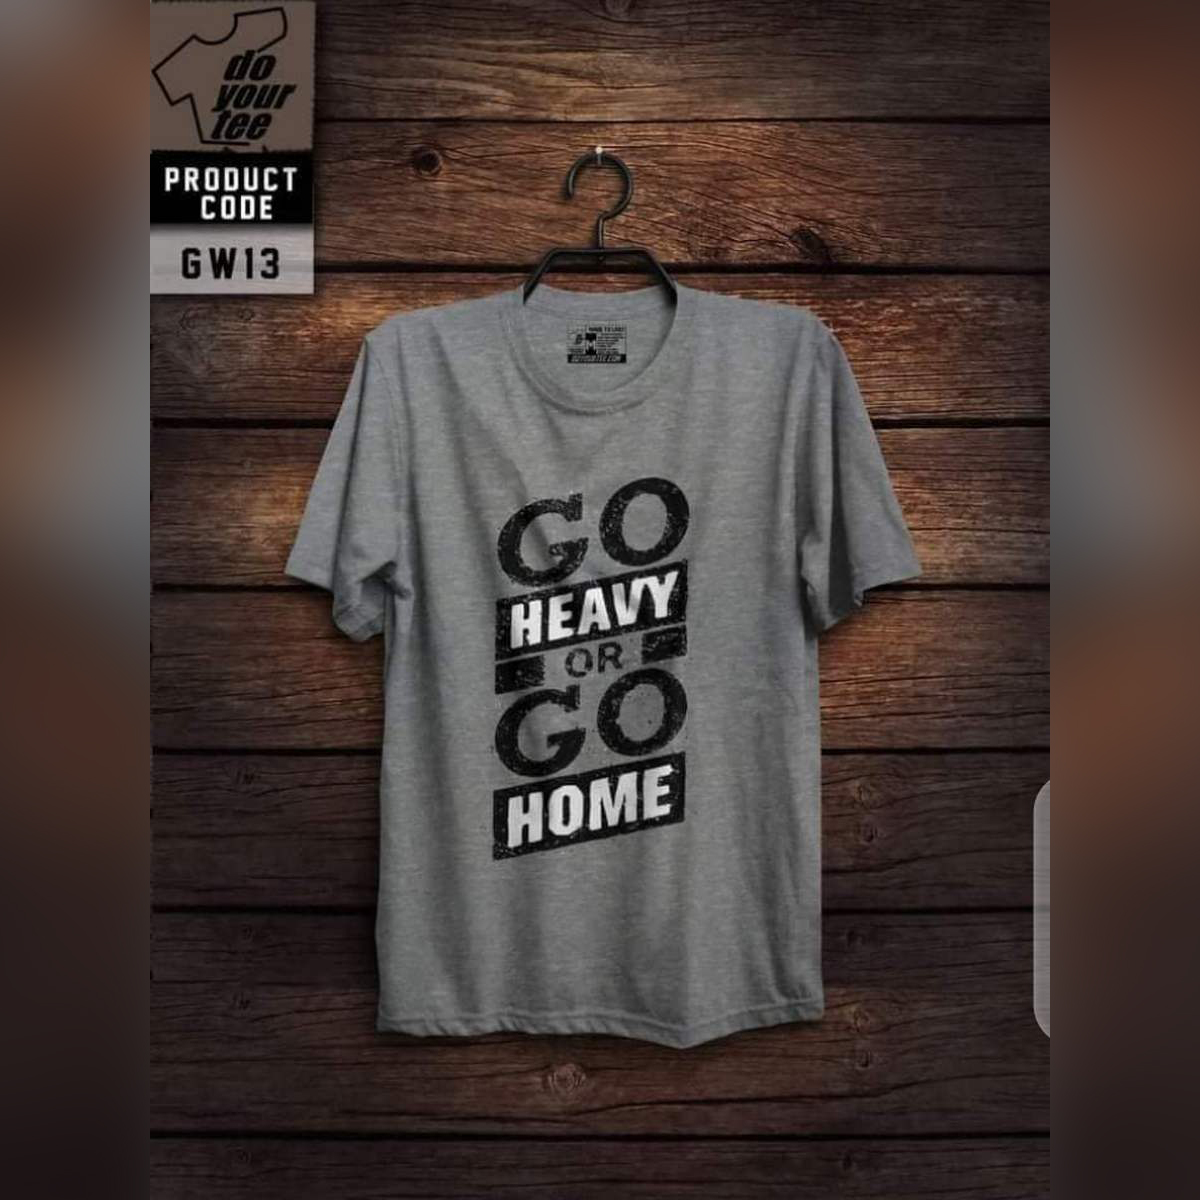 High quality imported vintage gym printed t shirt for men